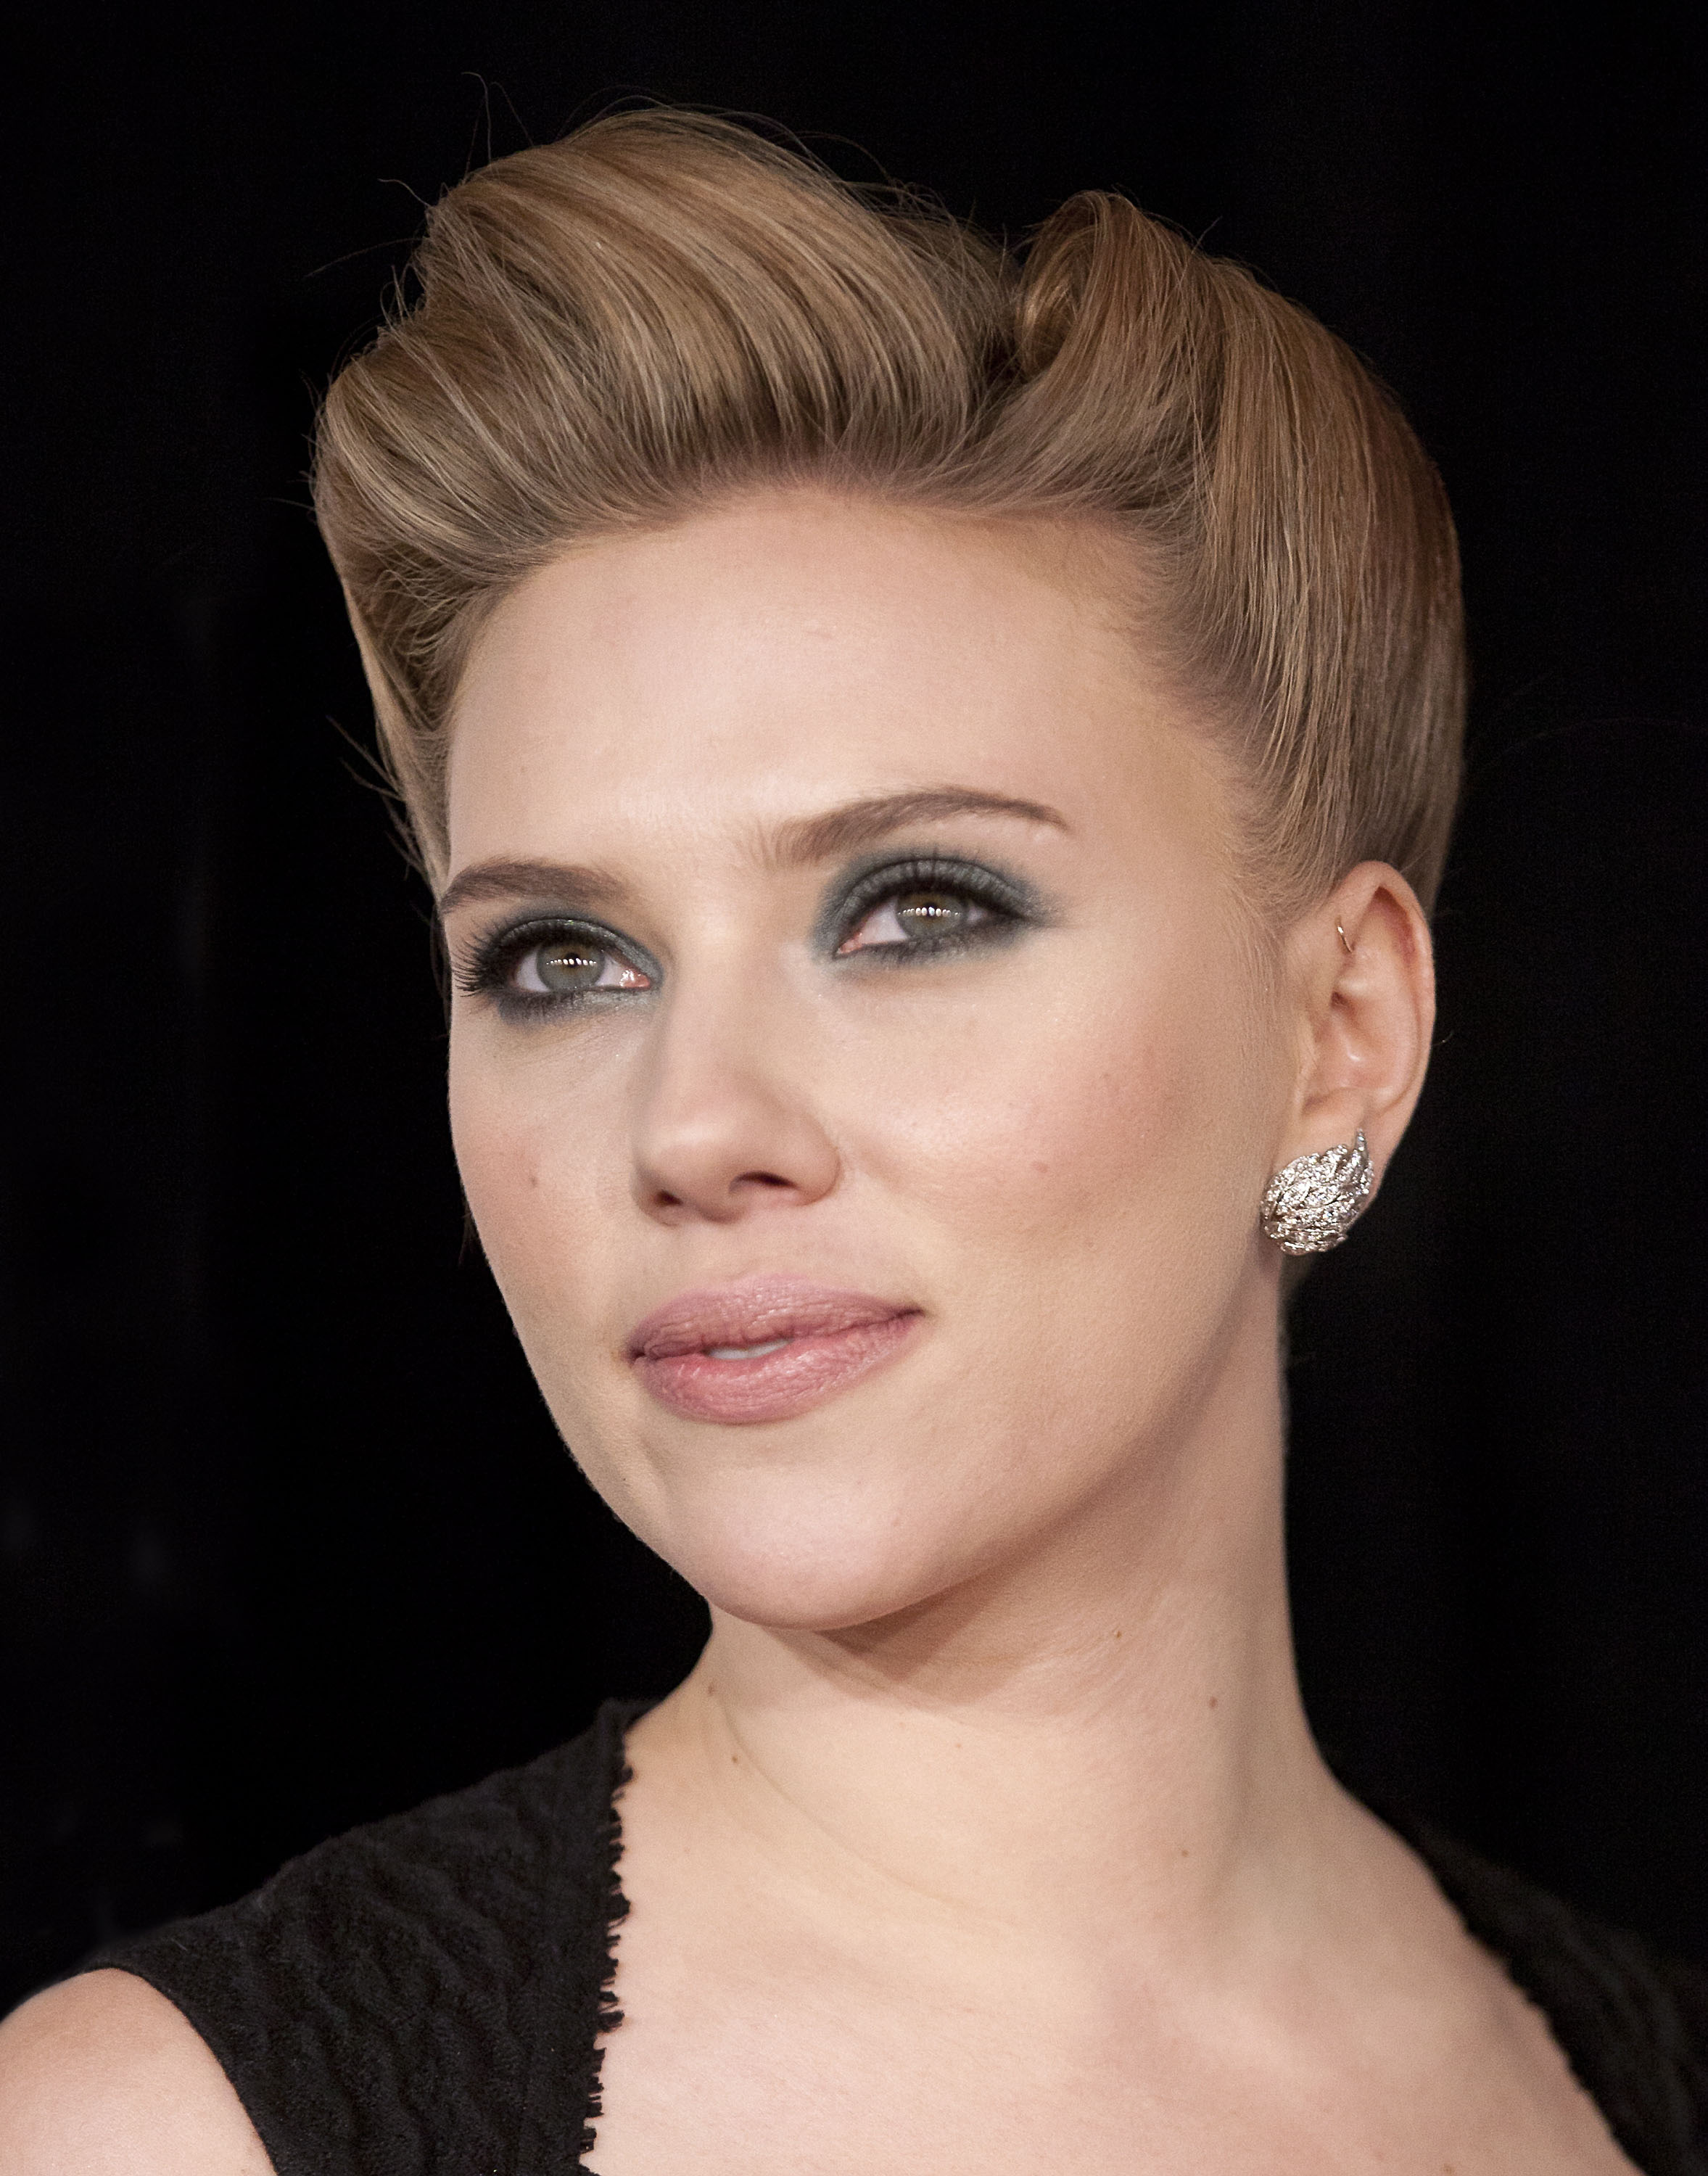 scarlett johansson london